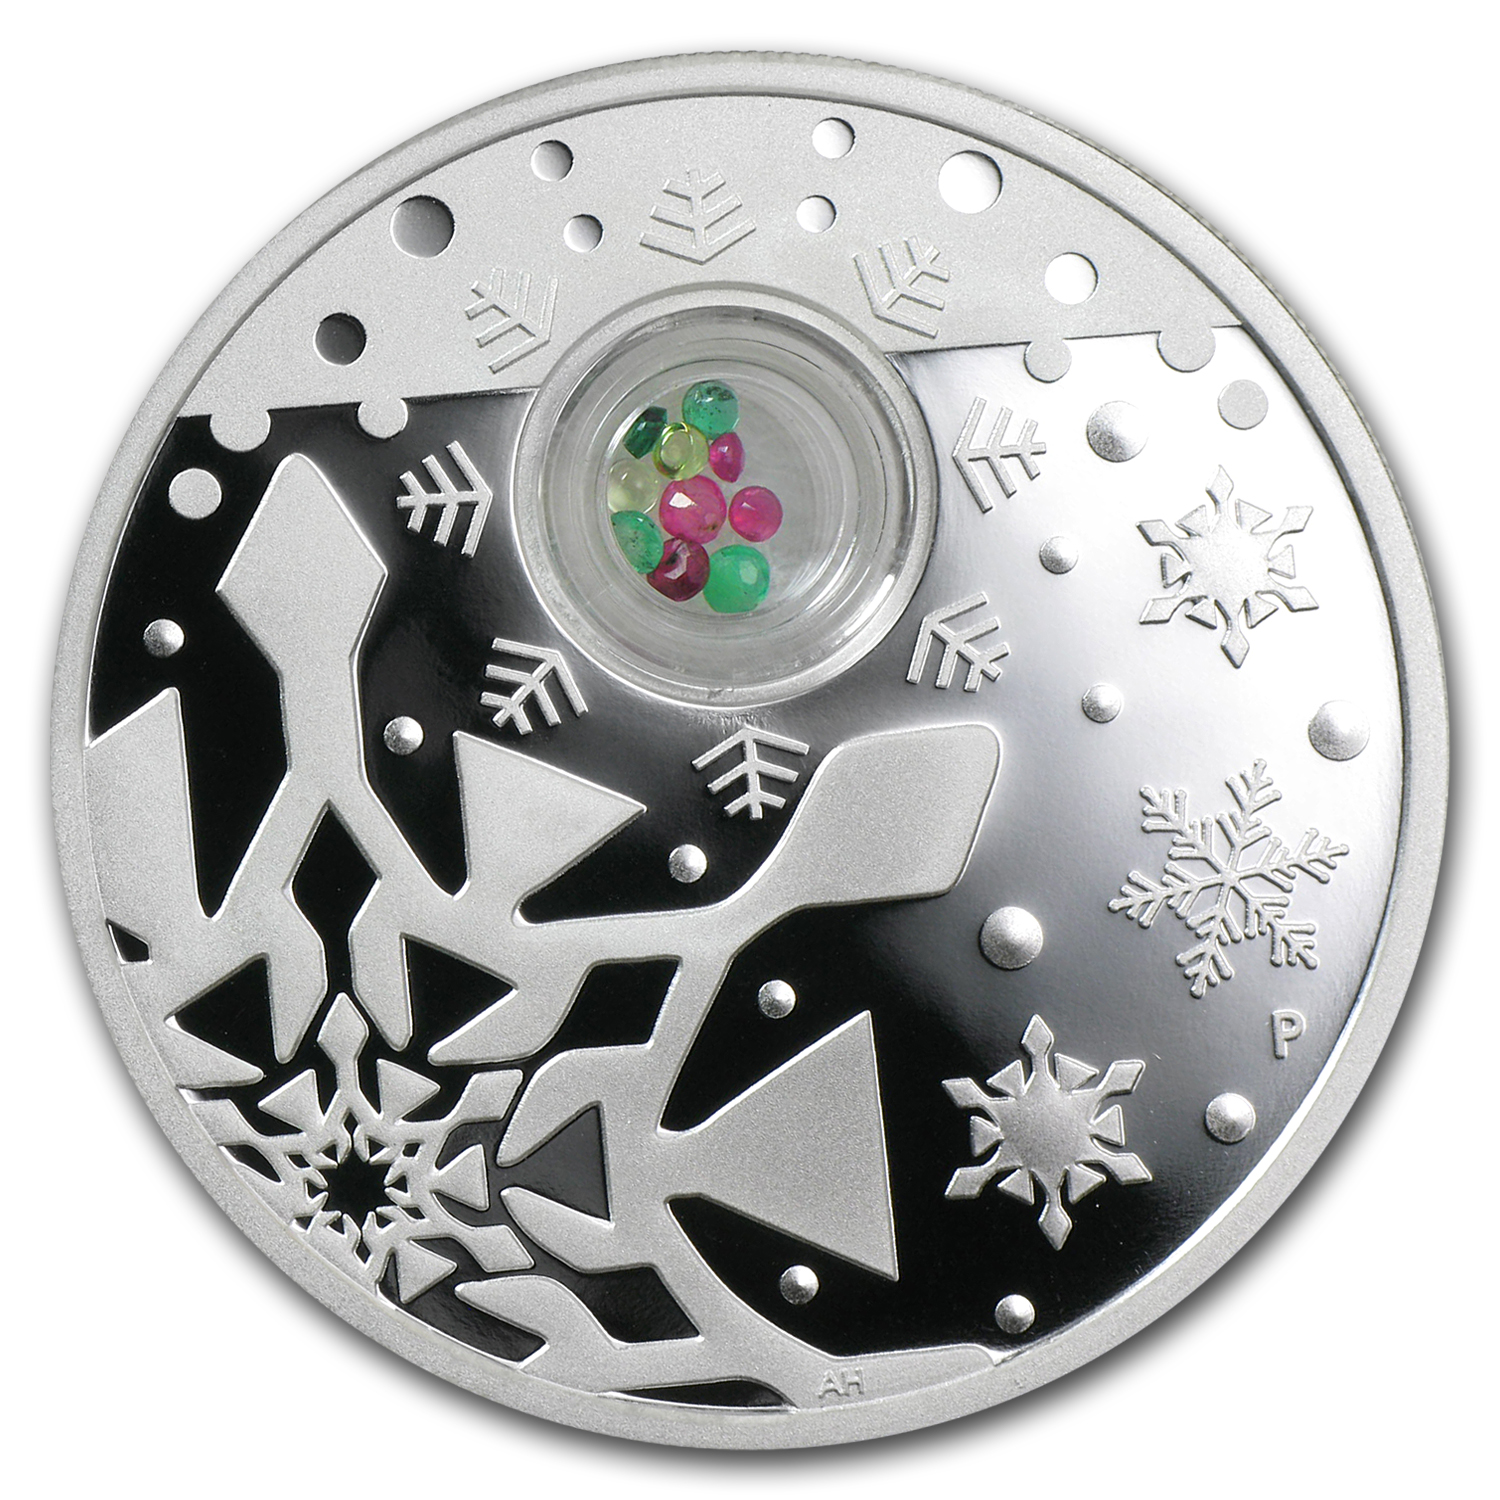 2012 Australia 1 oz Silver Christmas Locket Proof